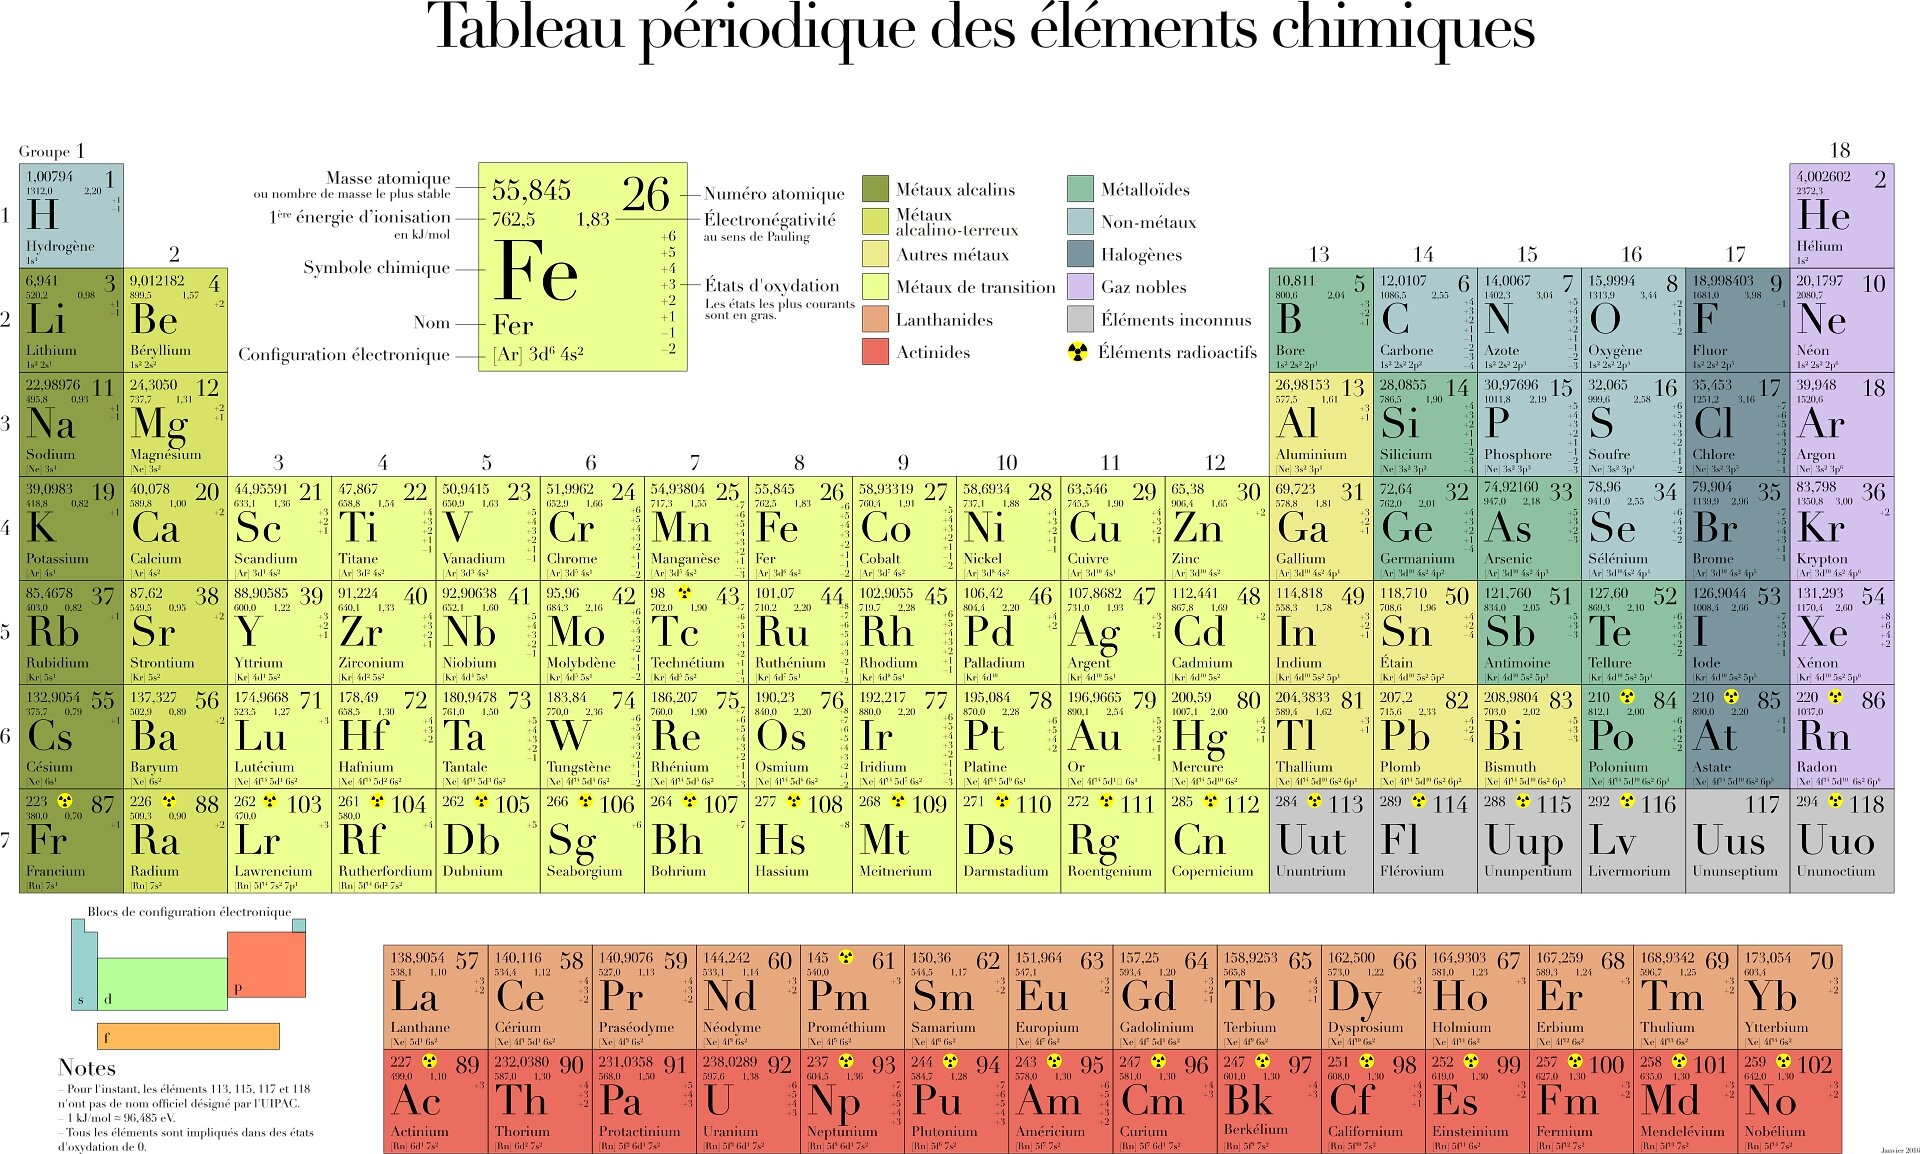 UNESCO celebrates 150 years of chemistry's periodic table